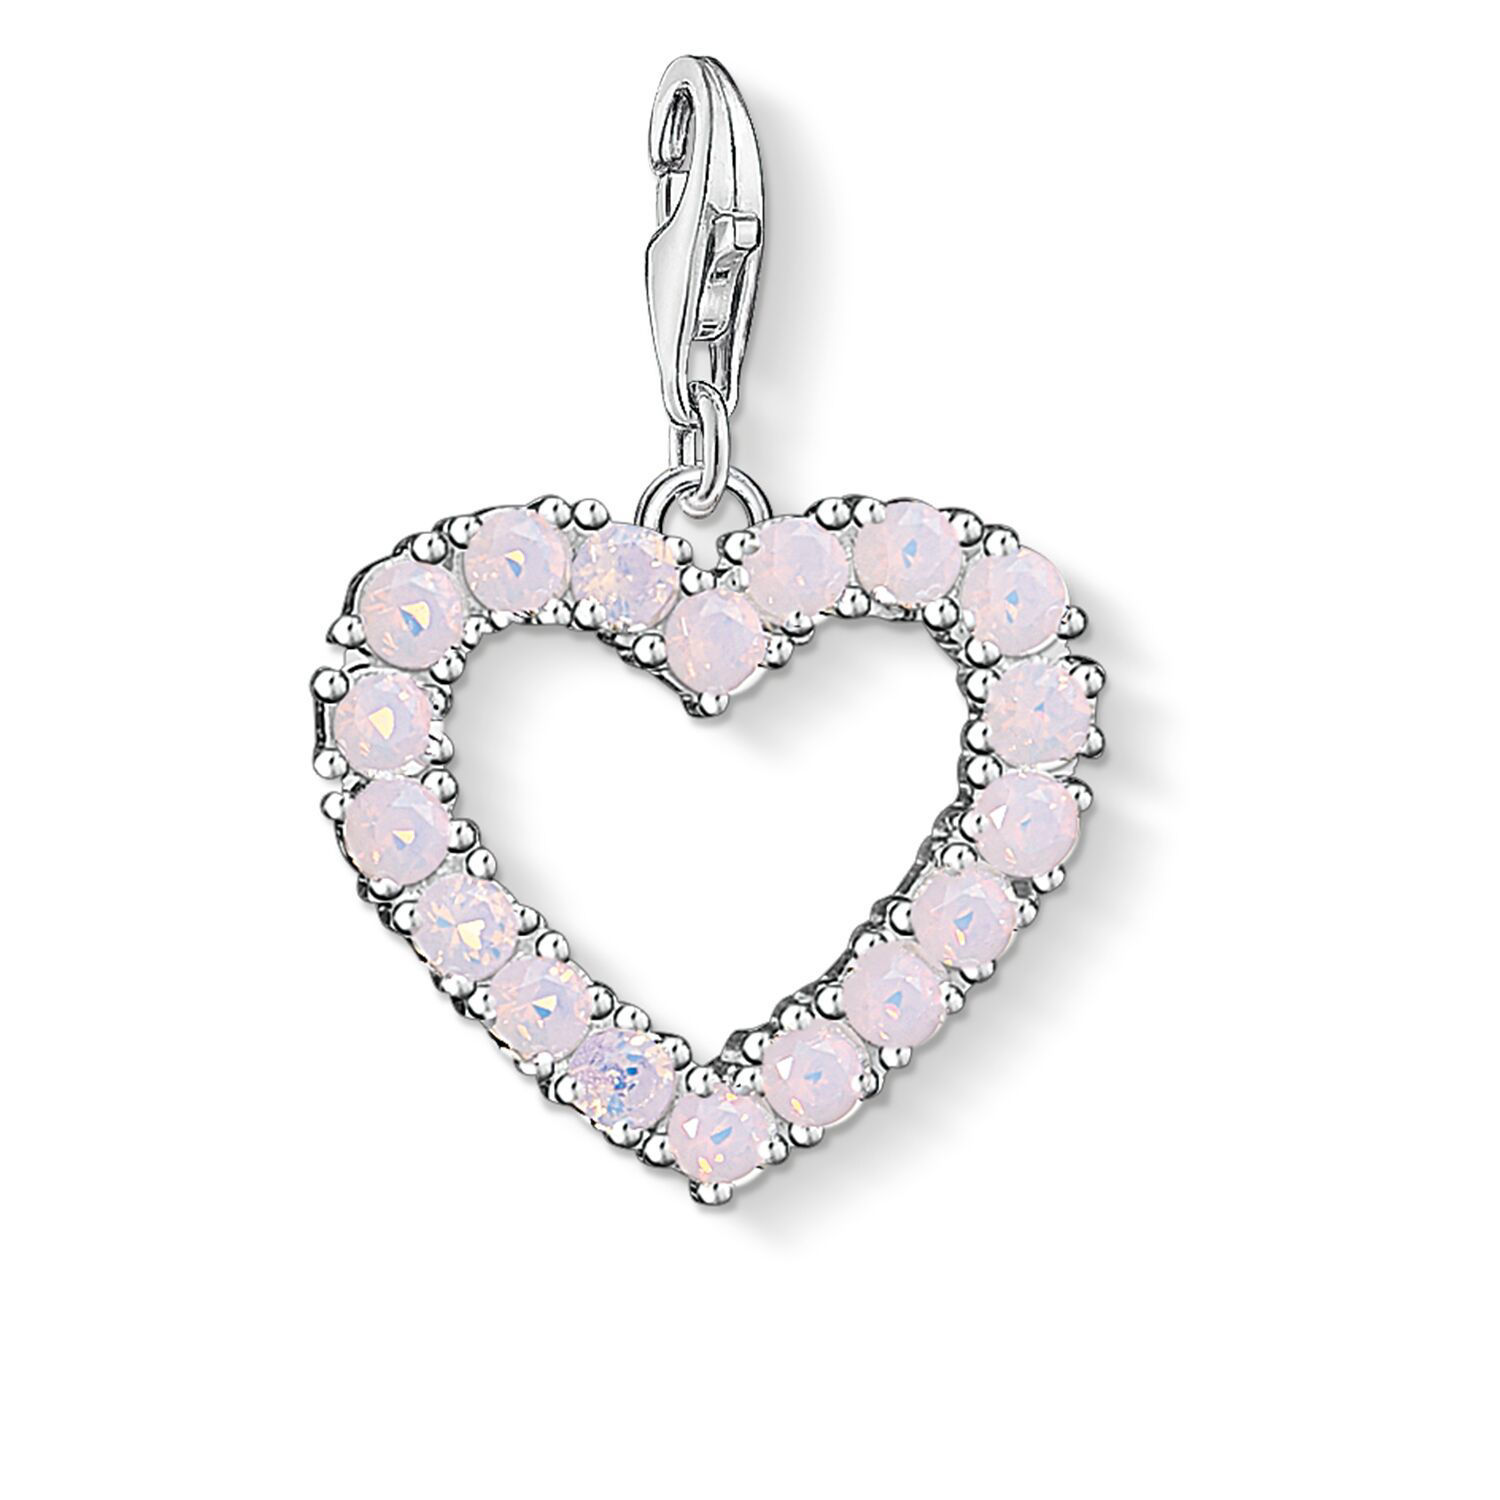 Picture of Open Heart with Pink Stones Charm